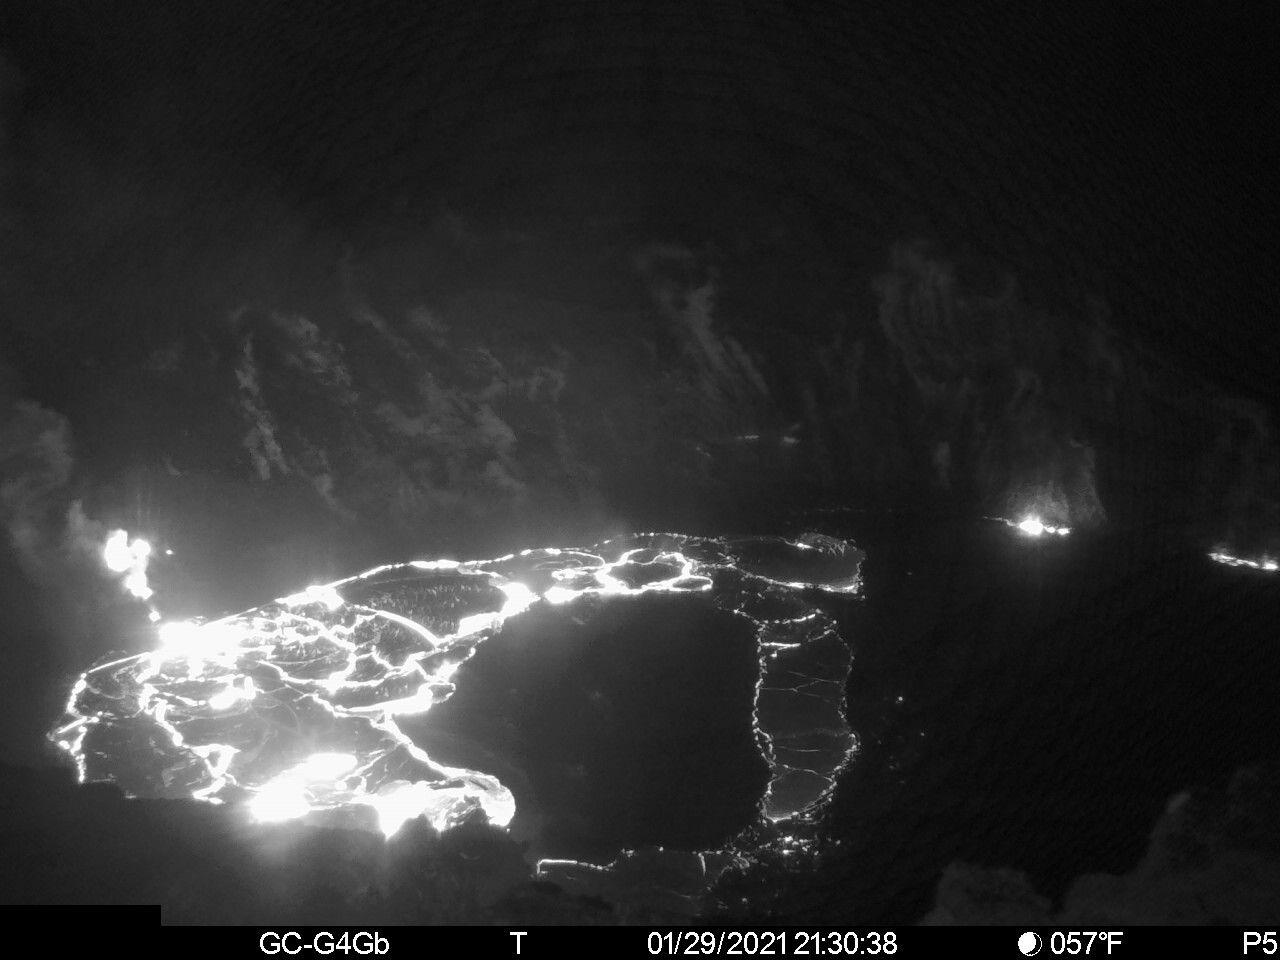 Kilauea - Halema'uma'u la ce lava - 01.29.2021 / 9:30 p.m. HST - A north-south trending line of shallow fissures divides the boundary between the active western part (left) and the stagnant eastern part (right) of the lake of Halema'uma'u lava. Lake depth measurements taken on January 28 on both sides of the cracks (near the center) indicate that the eastern part of the lava lake is 4 meters (13 feet) lower than the western part of the lava lake - HVO webcam